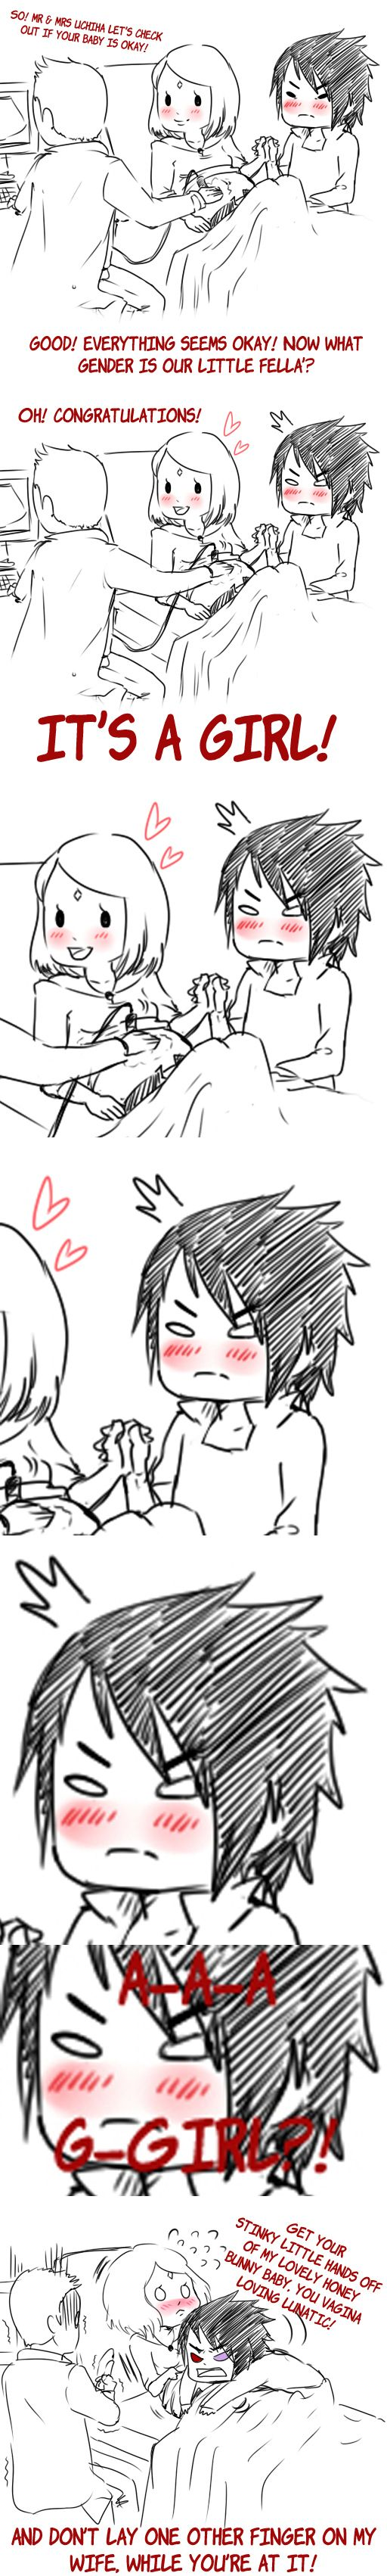 ❤Kawaii Love❤ ~Things that probably happened... Just wait until he remembers that Naruto already has a baby boy.